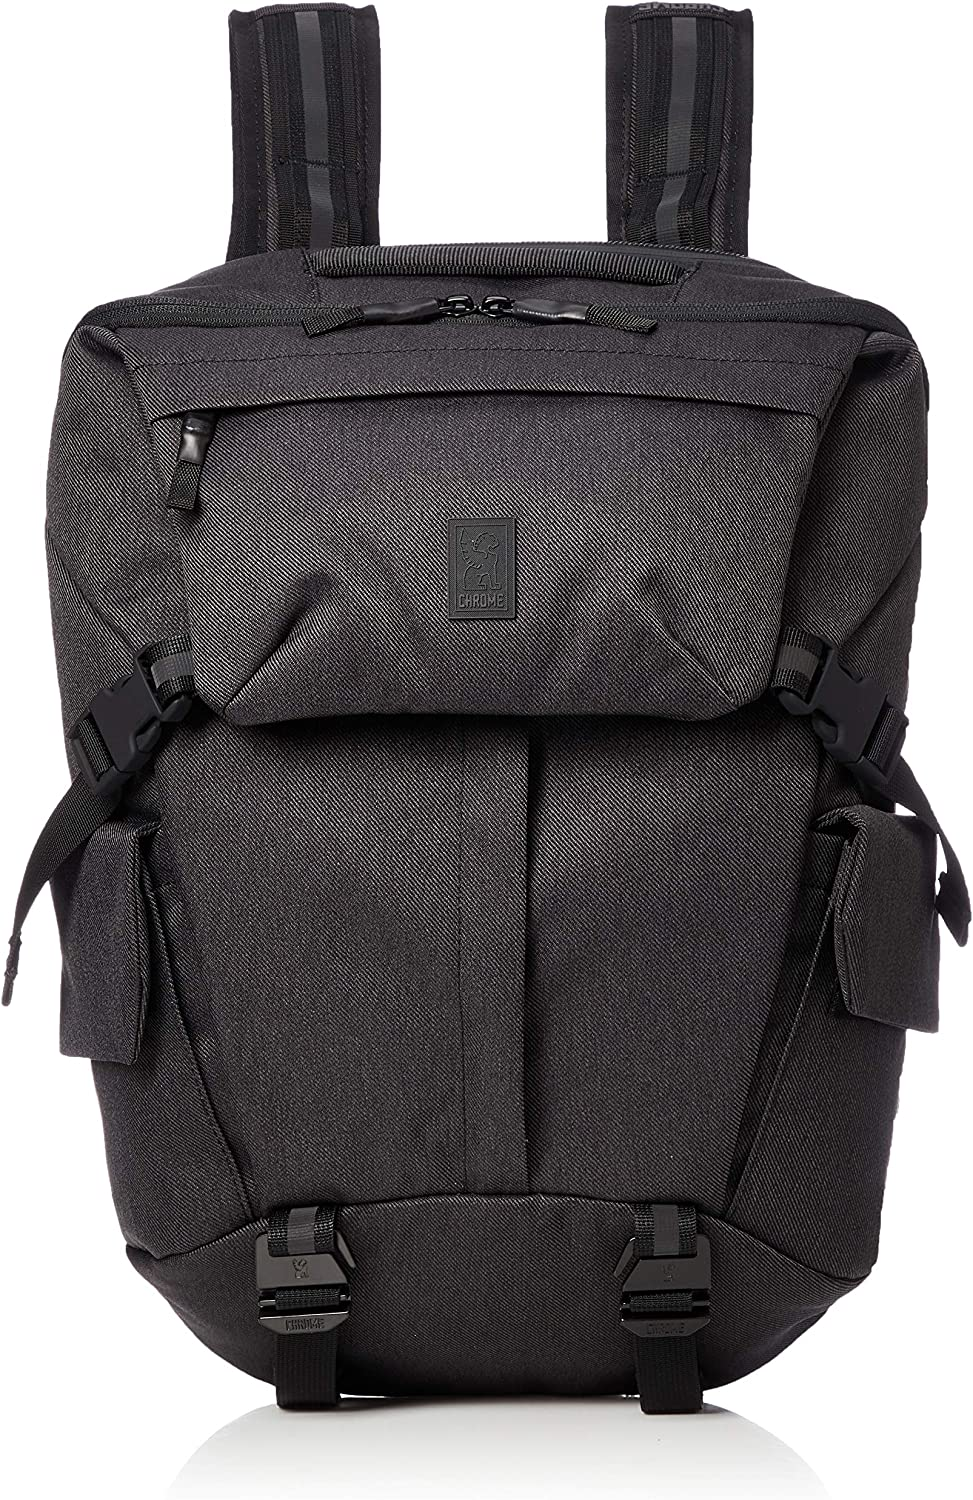 Chrome Industries Pike Backpack Utilitarian Travel Bag 22 Liter Black